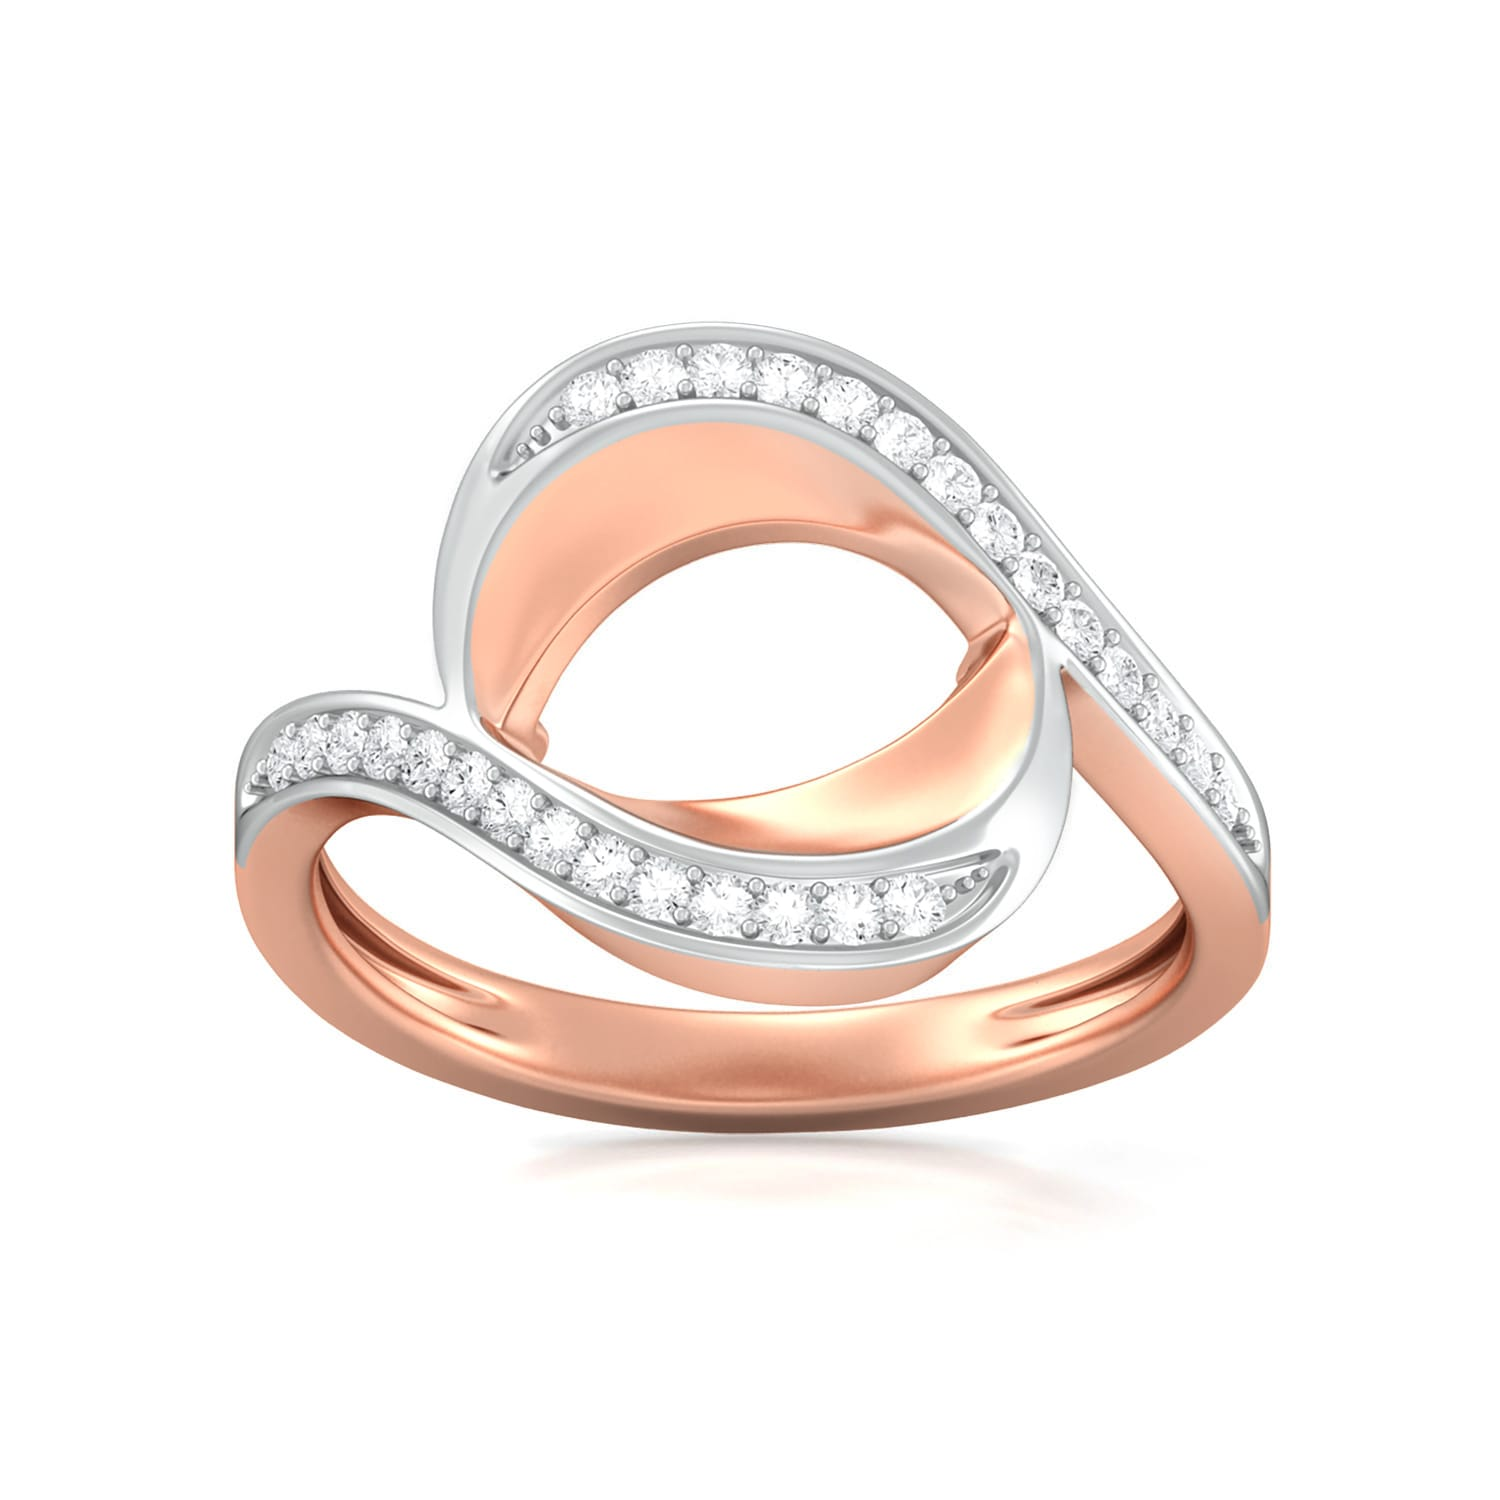 Peaks & Valleys Diamond Rings